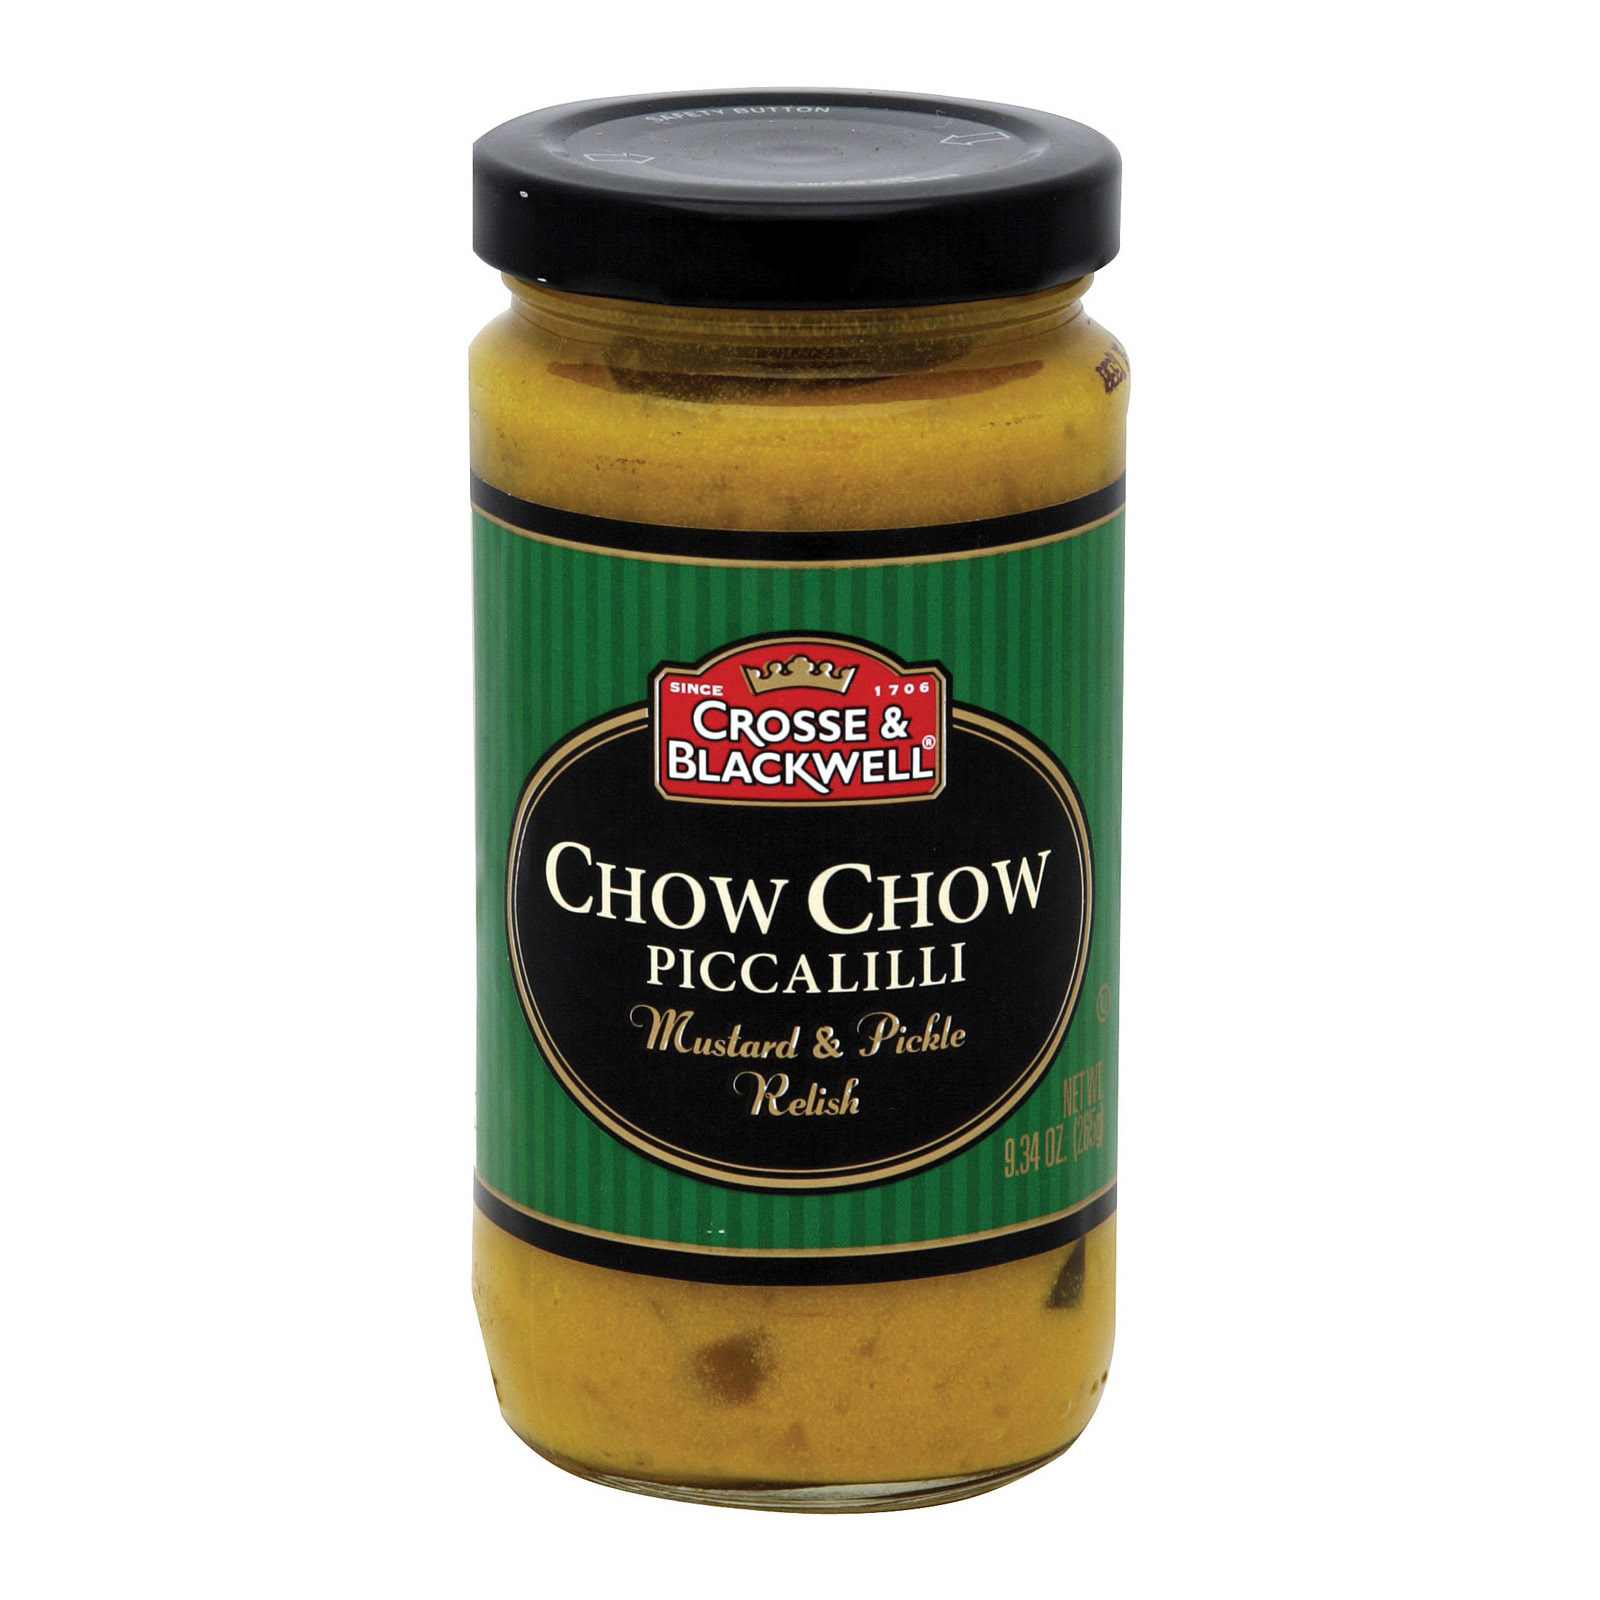 Crosse and Blackwell Relish - Chow Chow - Case of 6 - 9.4 oz